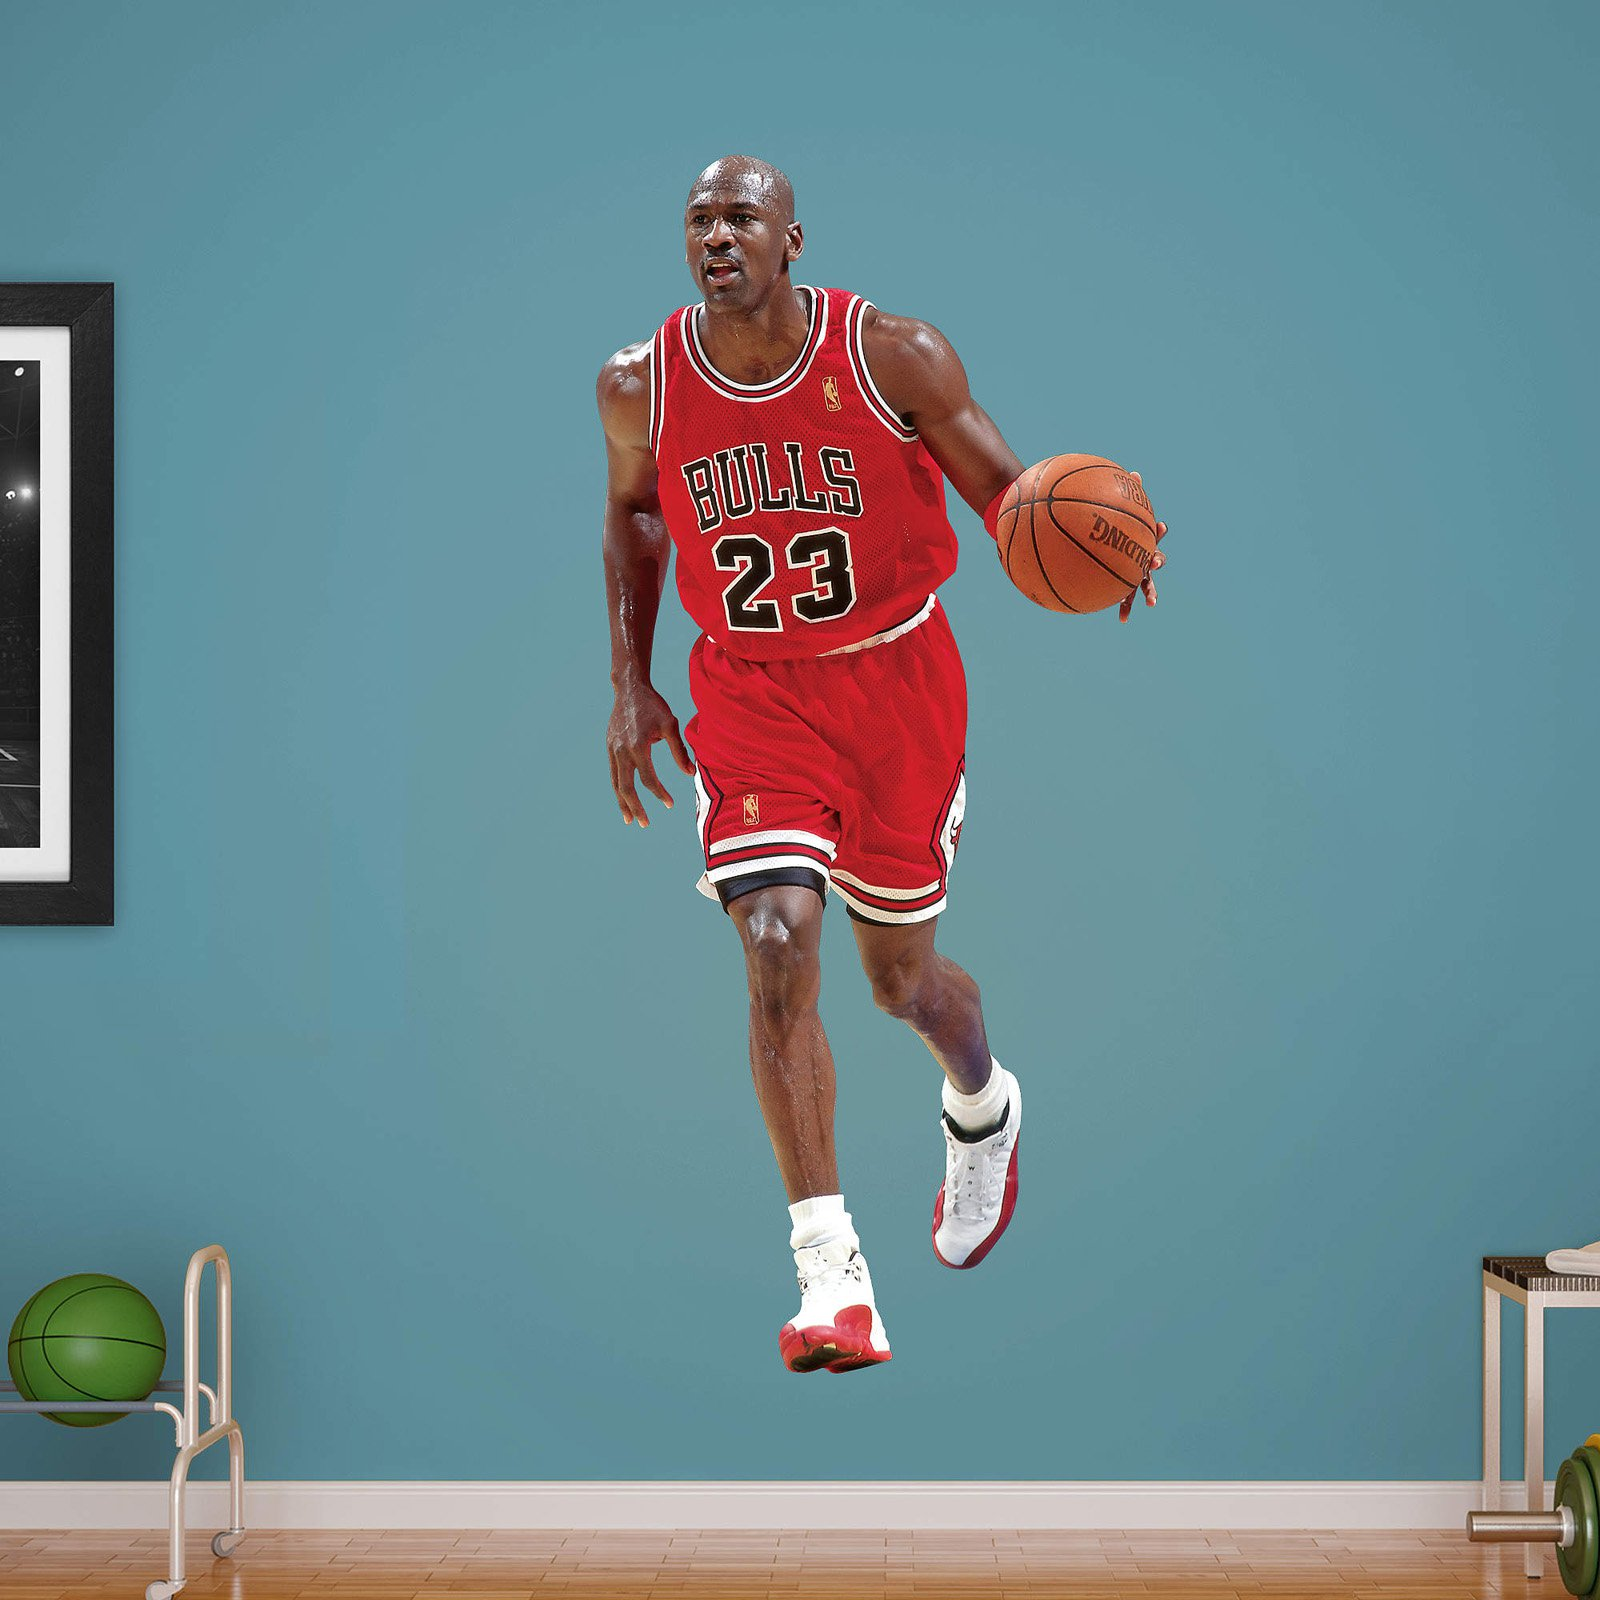 Fathead NBA Chicago Bulls Michael Jordan Wall Decal